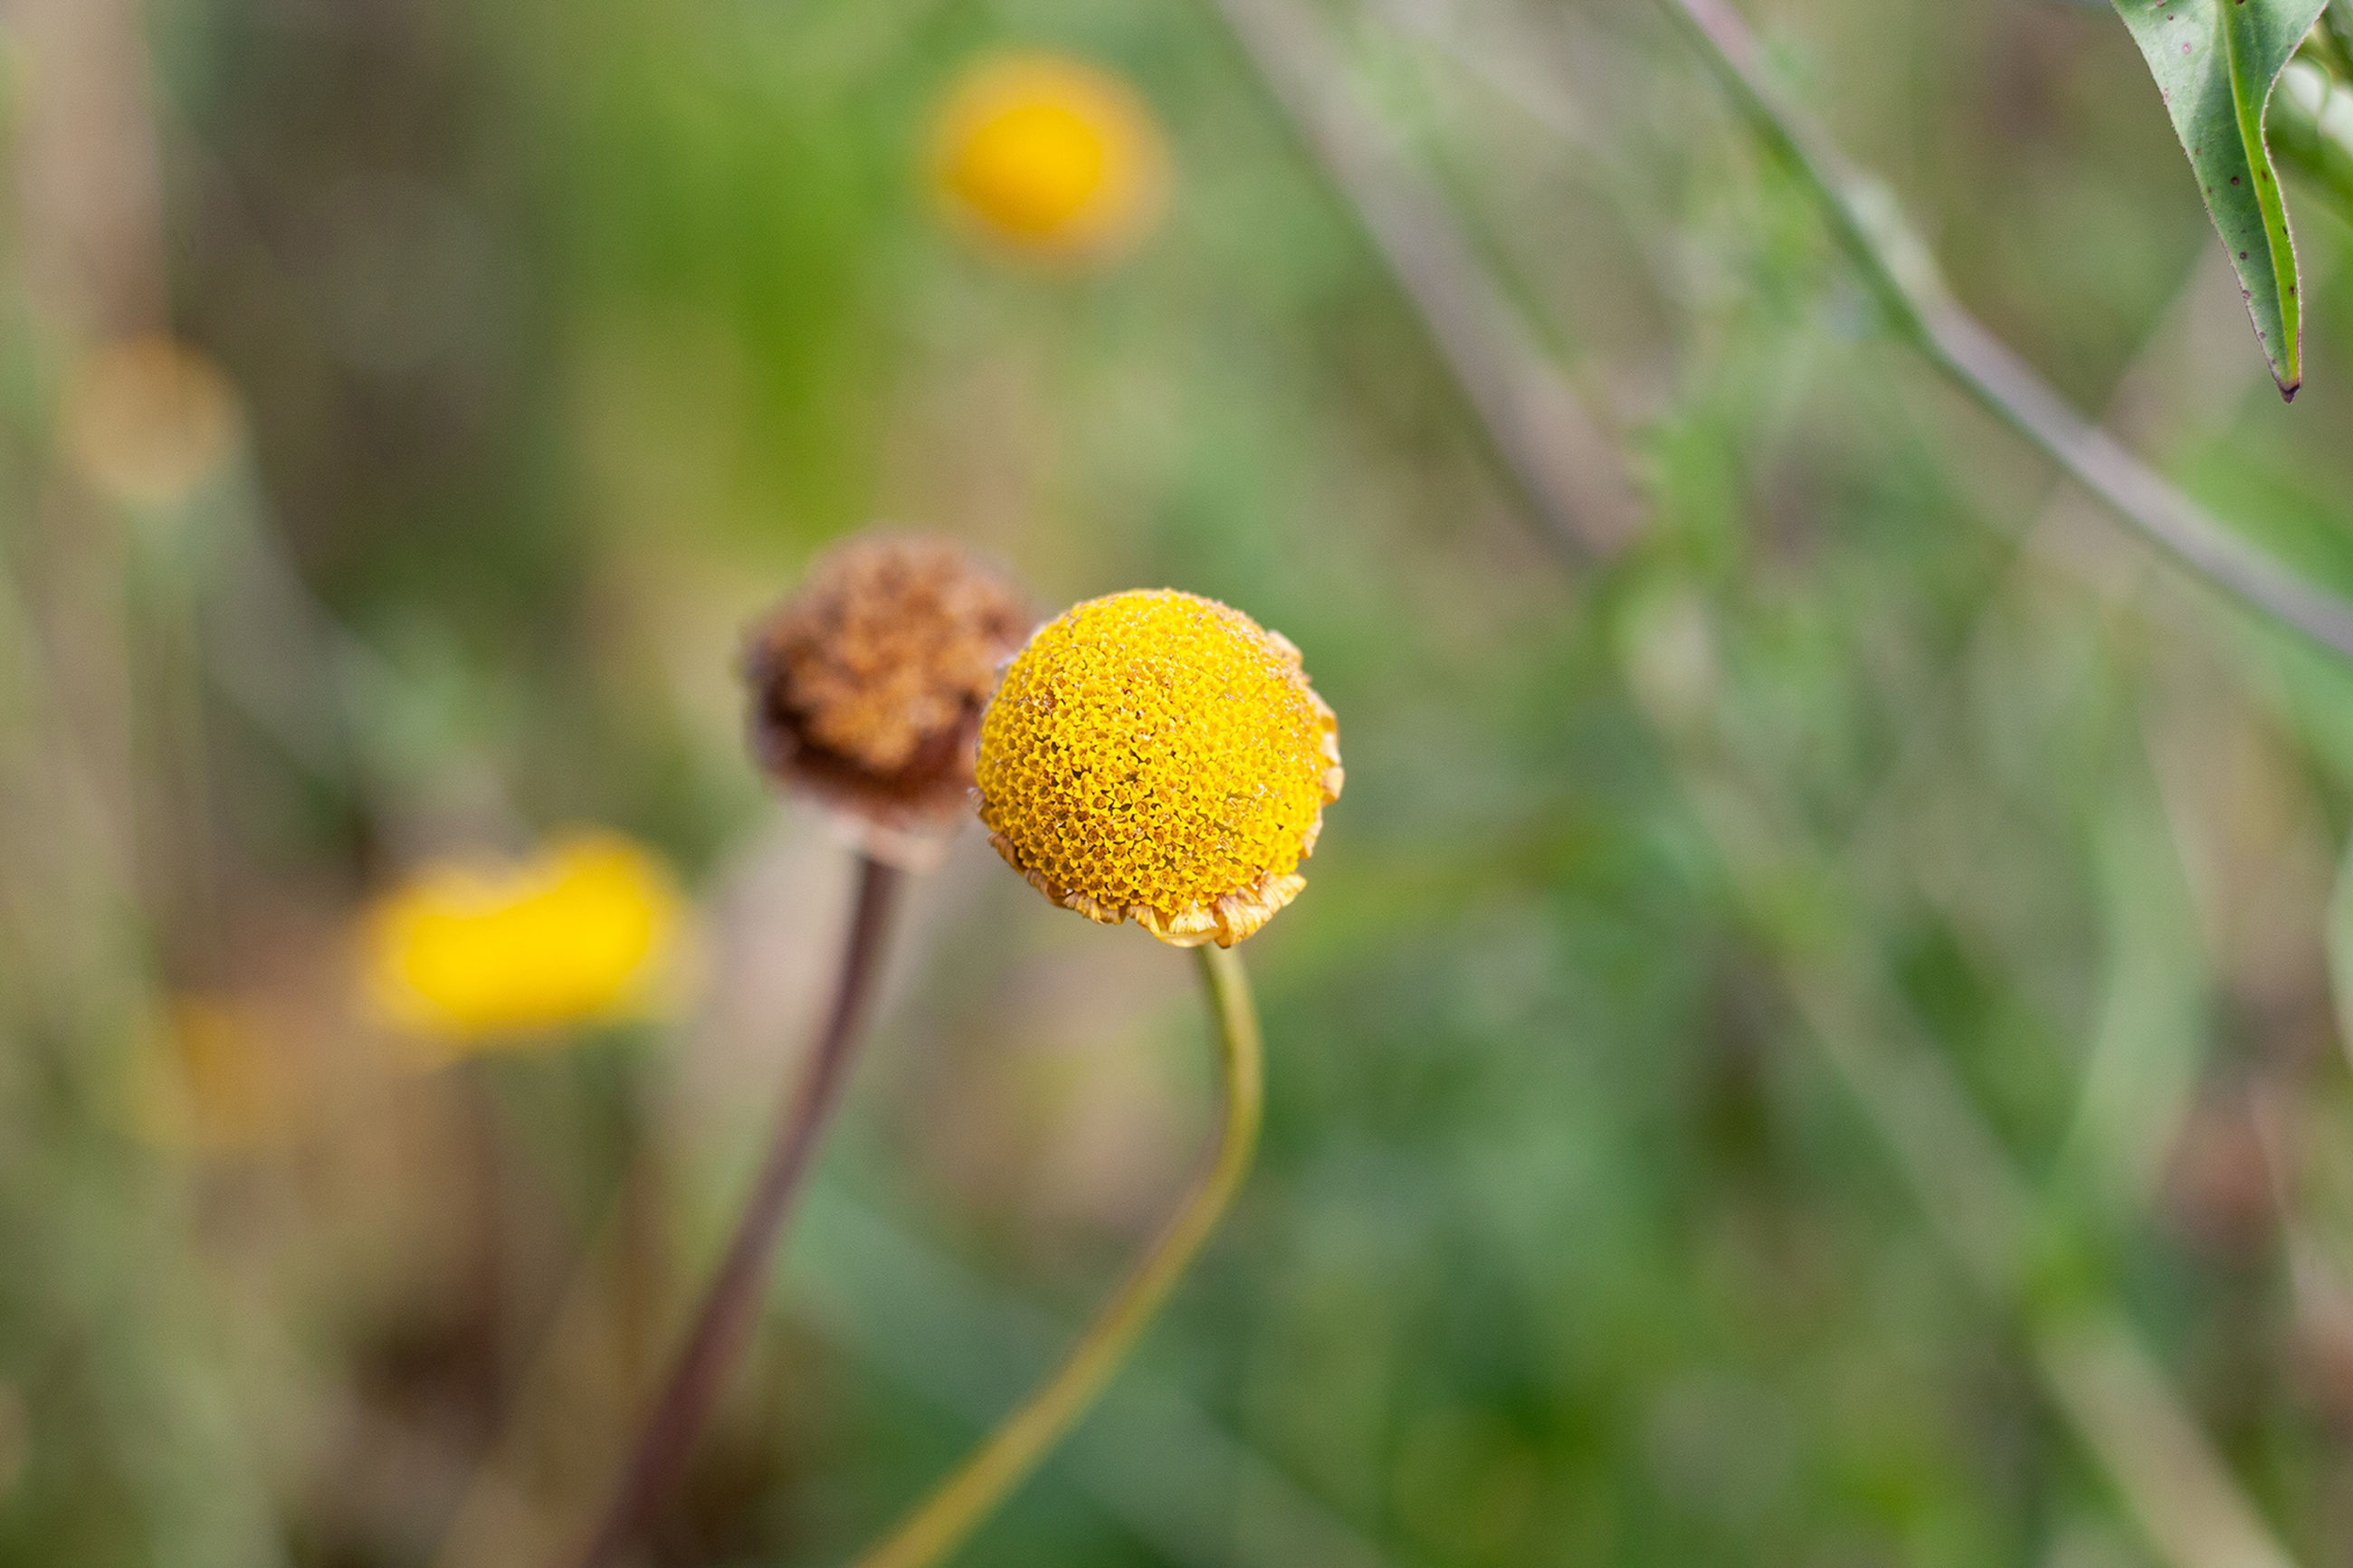 flower, flowering plant, growth, beauty in nature, plant, close-up, freshness, focus on foreground, fragility, vulnerability, inflorescence, flower head, yellow, nature, day, no people, selective focus, plant stem, field, outdoors, pollen, softness